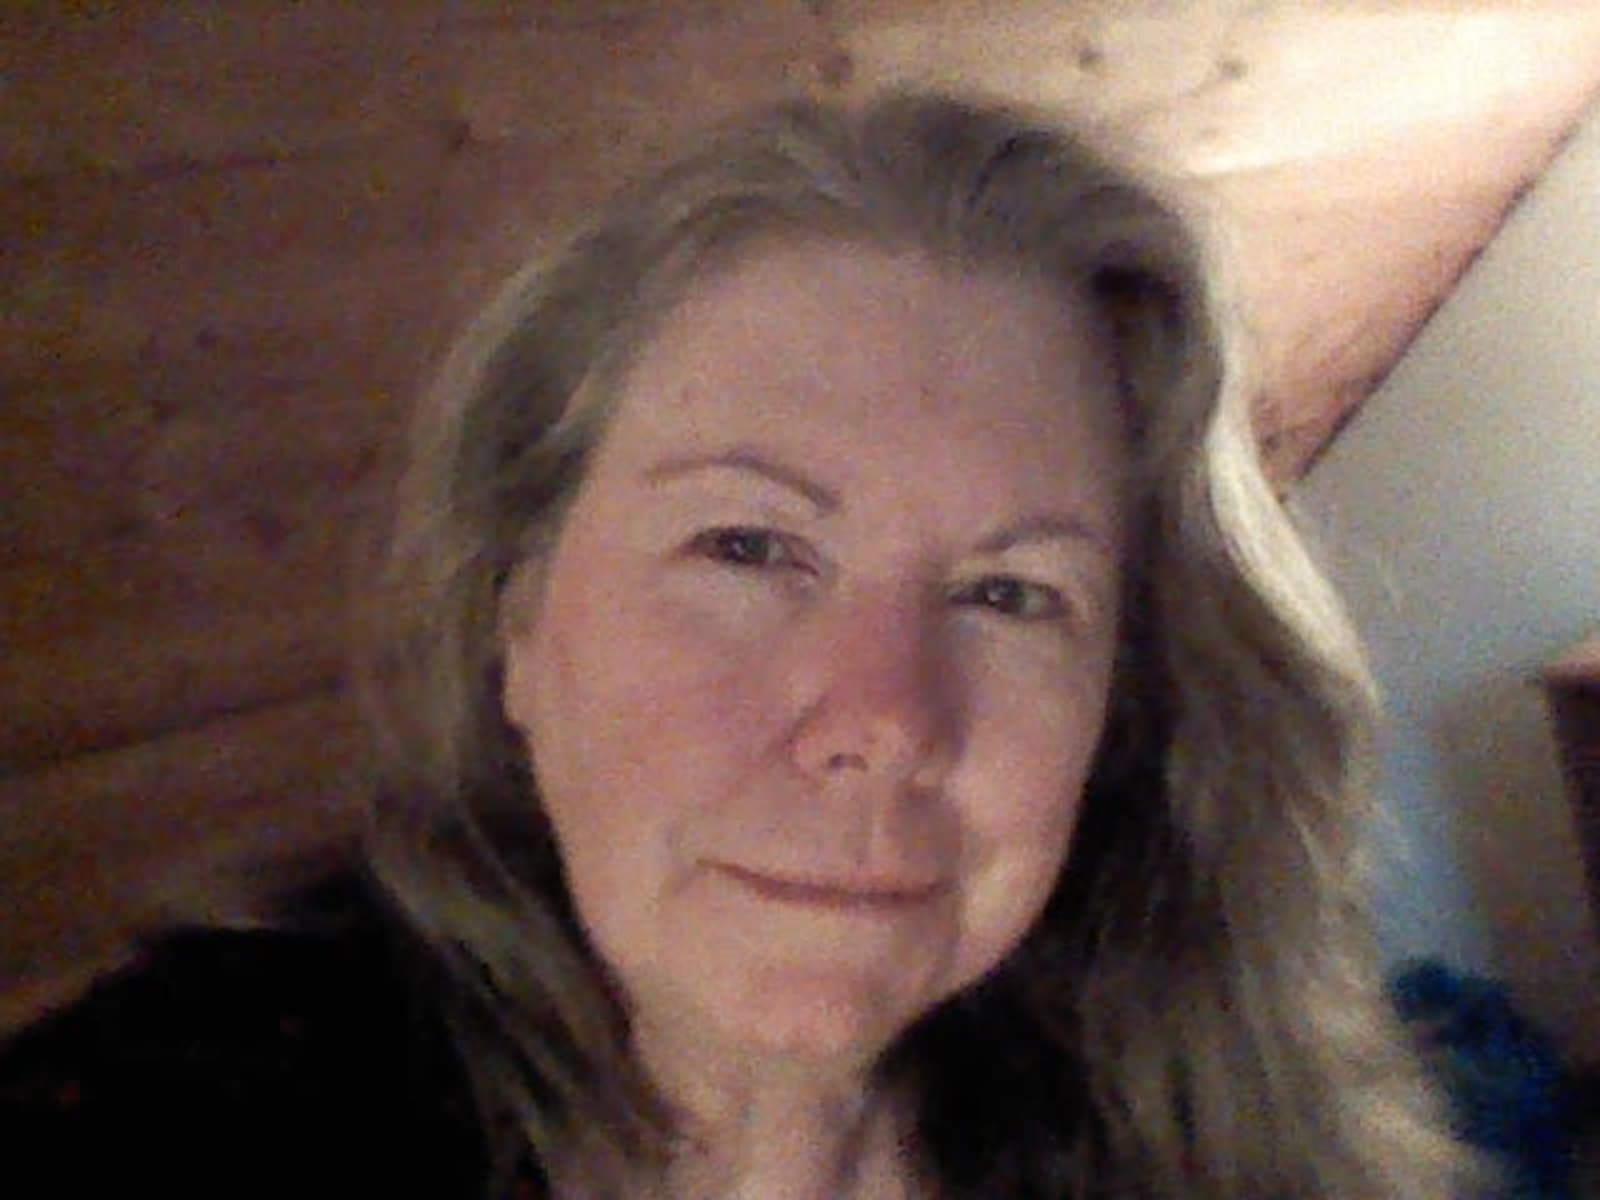 Joyce from Surry, Maine, United States